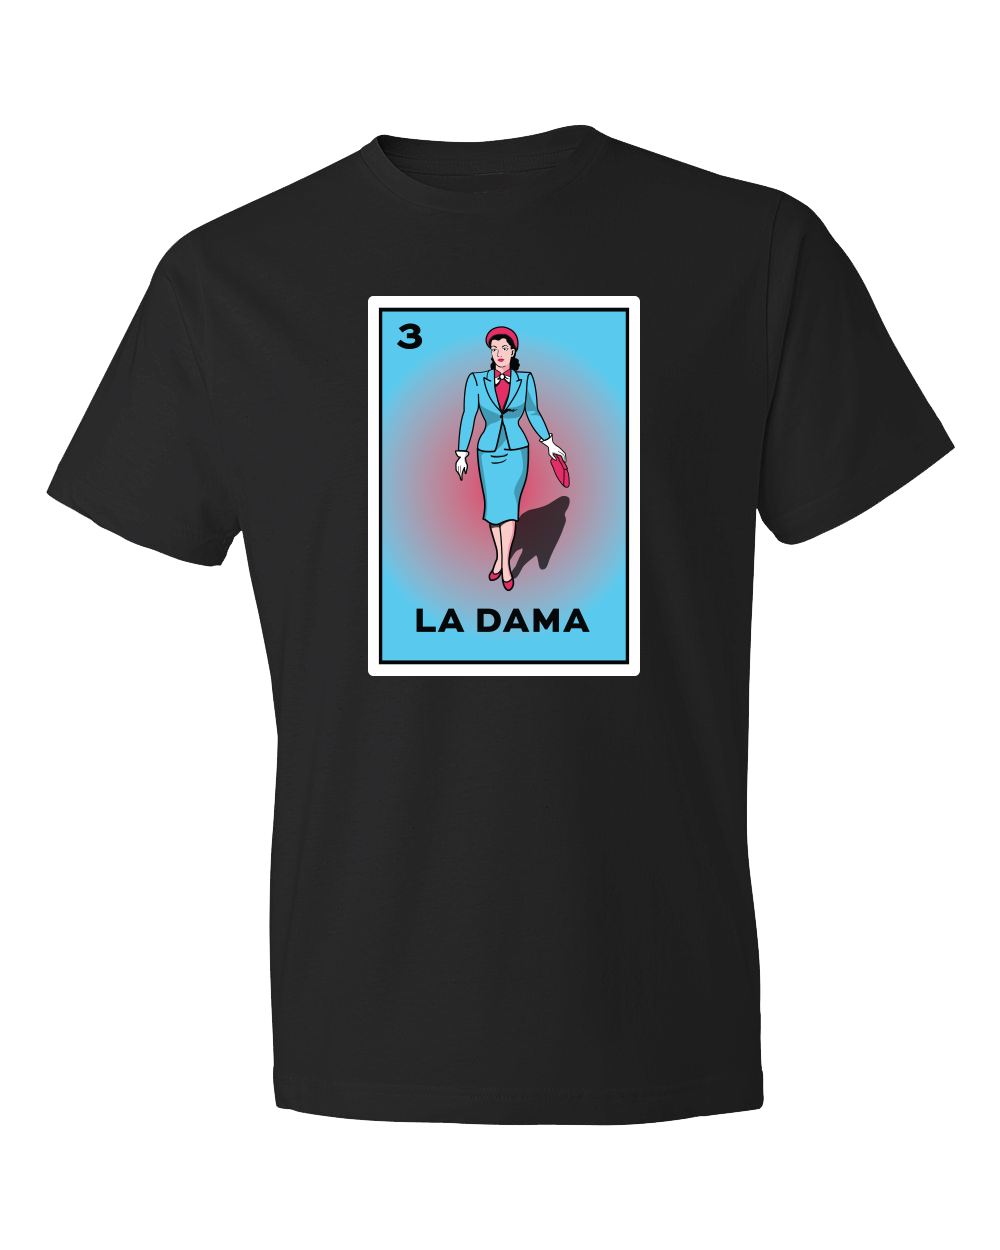 Loteria Shirts La Dama tshirt adult women tees mexican shirts graphic design inspired by La loteria Mexican Game. Designed and Printed Locally by San Diego, California, USA artist. Perfect outfit idea or Birthday gift. A Cultural, Artistic, and Trendy Popular Tee.